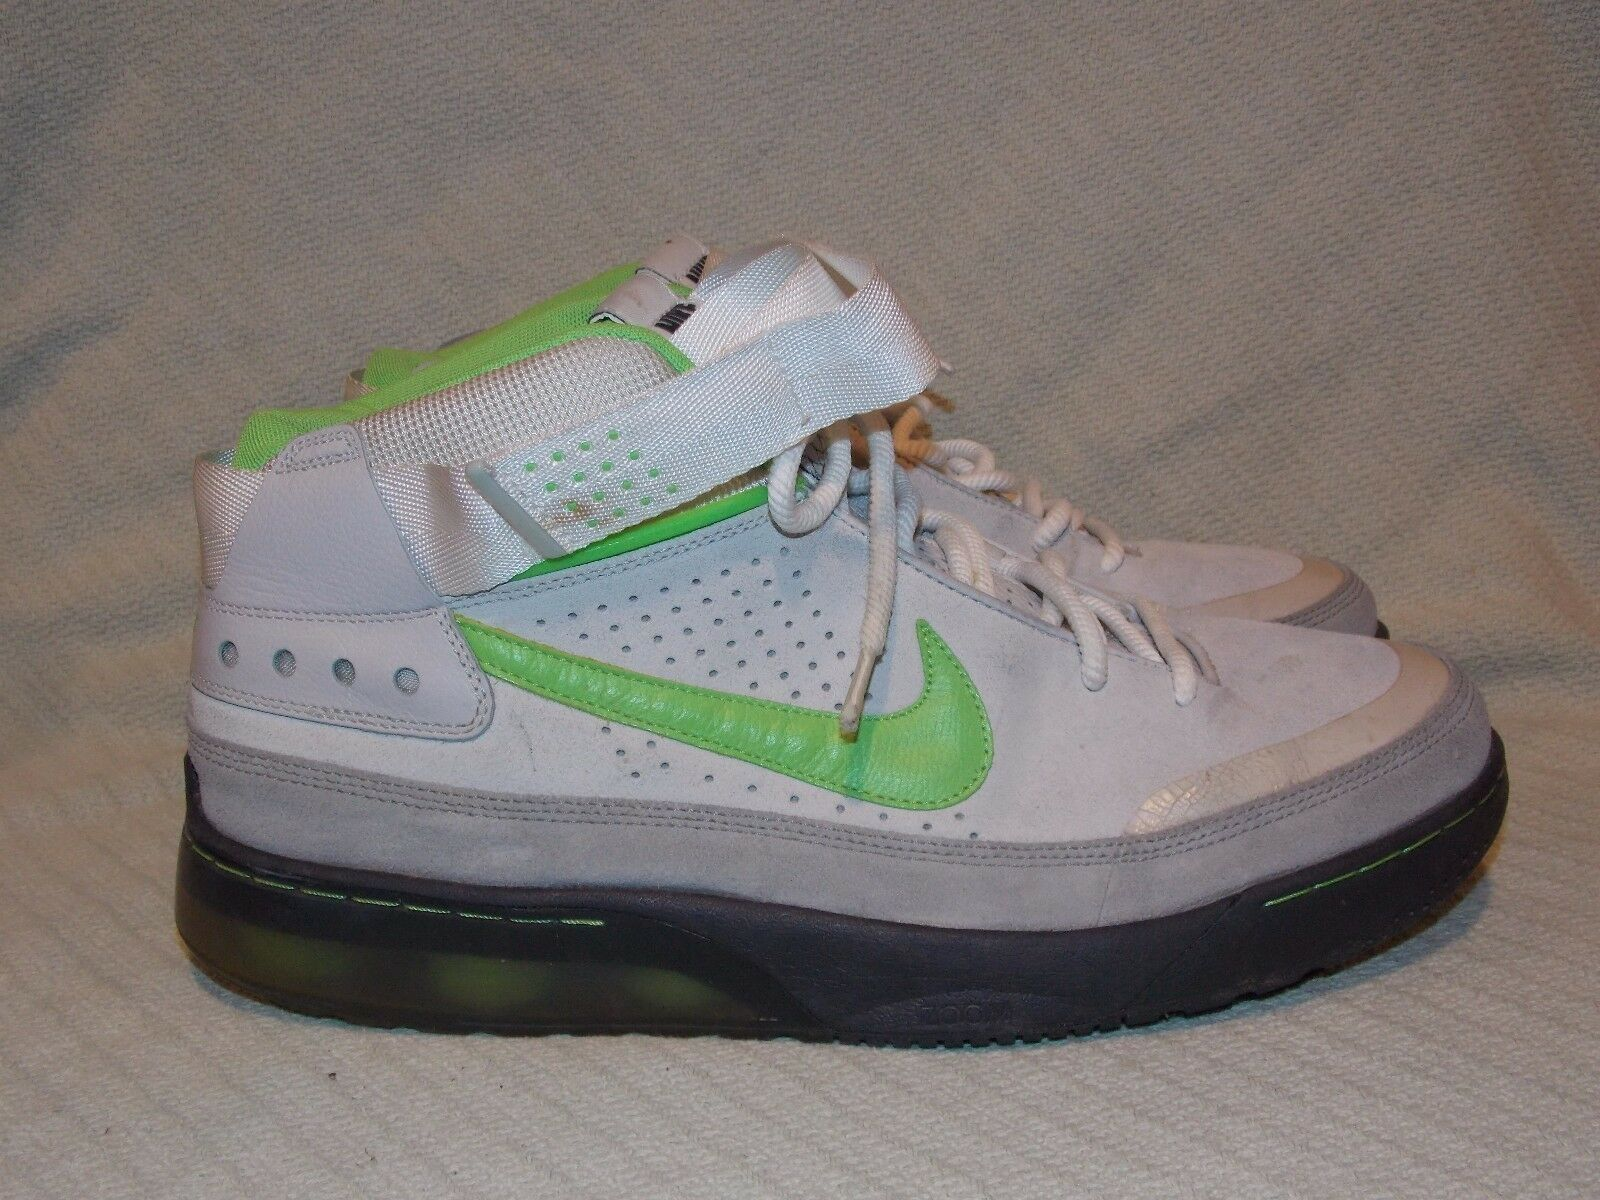 9c0ff9ed5c1c Men s Men s Men s Size 14 2008 Nike Air Force SHOX Suede Mid s Gray Green  315836